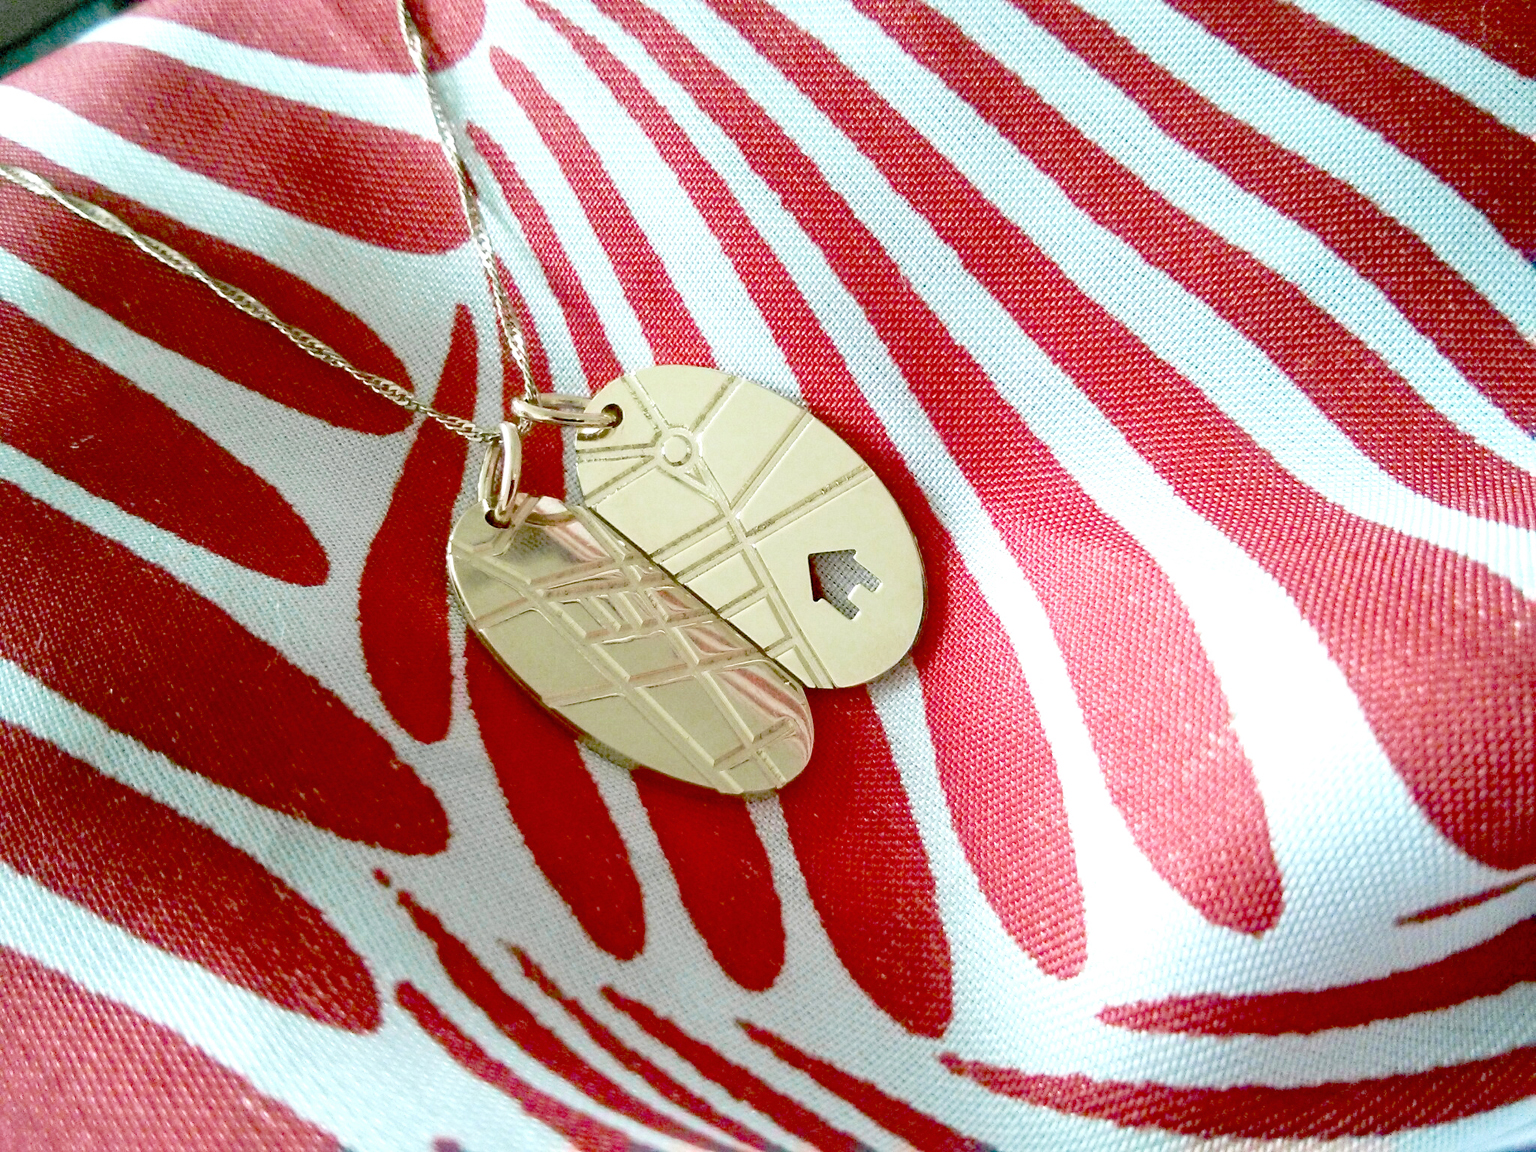 Pendant designed by Andrea Wilkinson, a design lecturer at LUCA School of Arts in Genk Belgium, for a woman with dementia who would often get lost while out walking